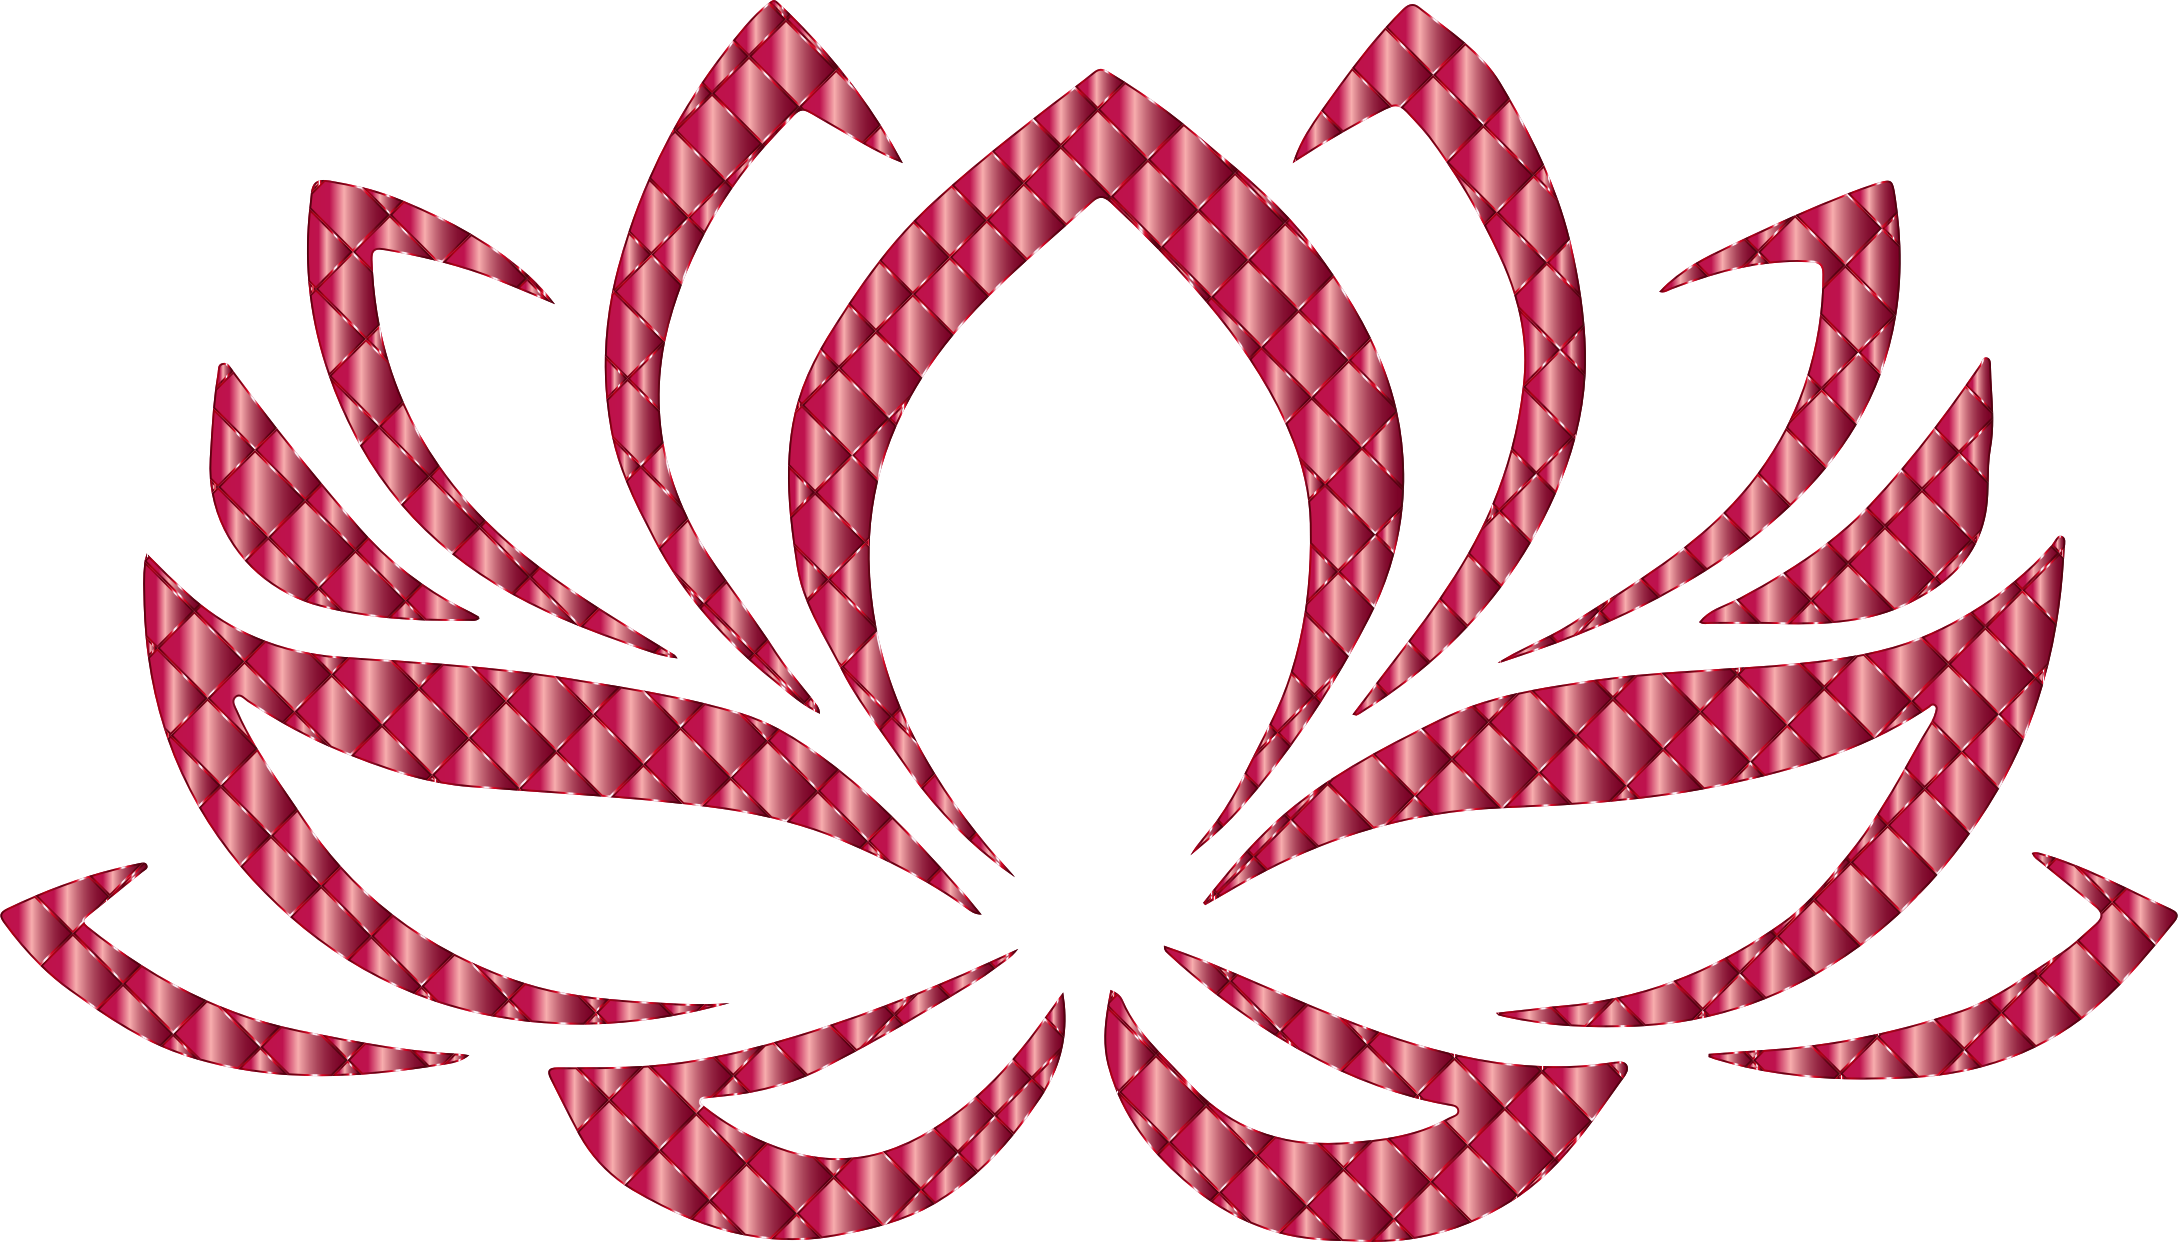 free download Lotus clipart abstract. Ruby flower no background.